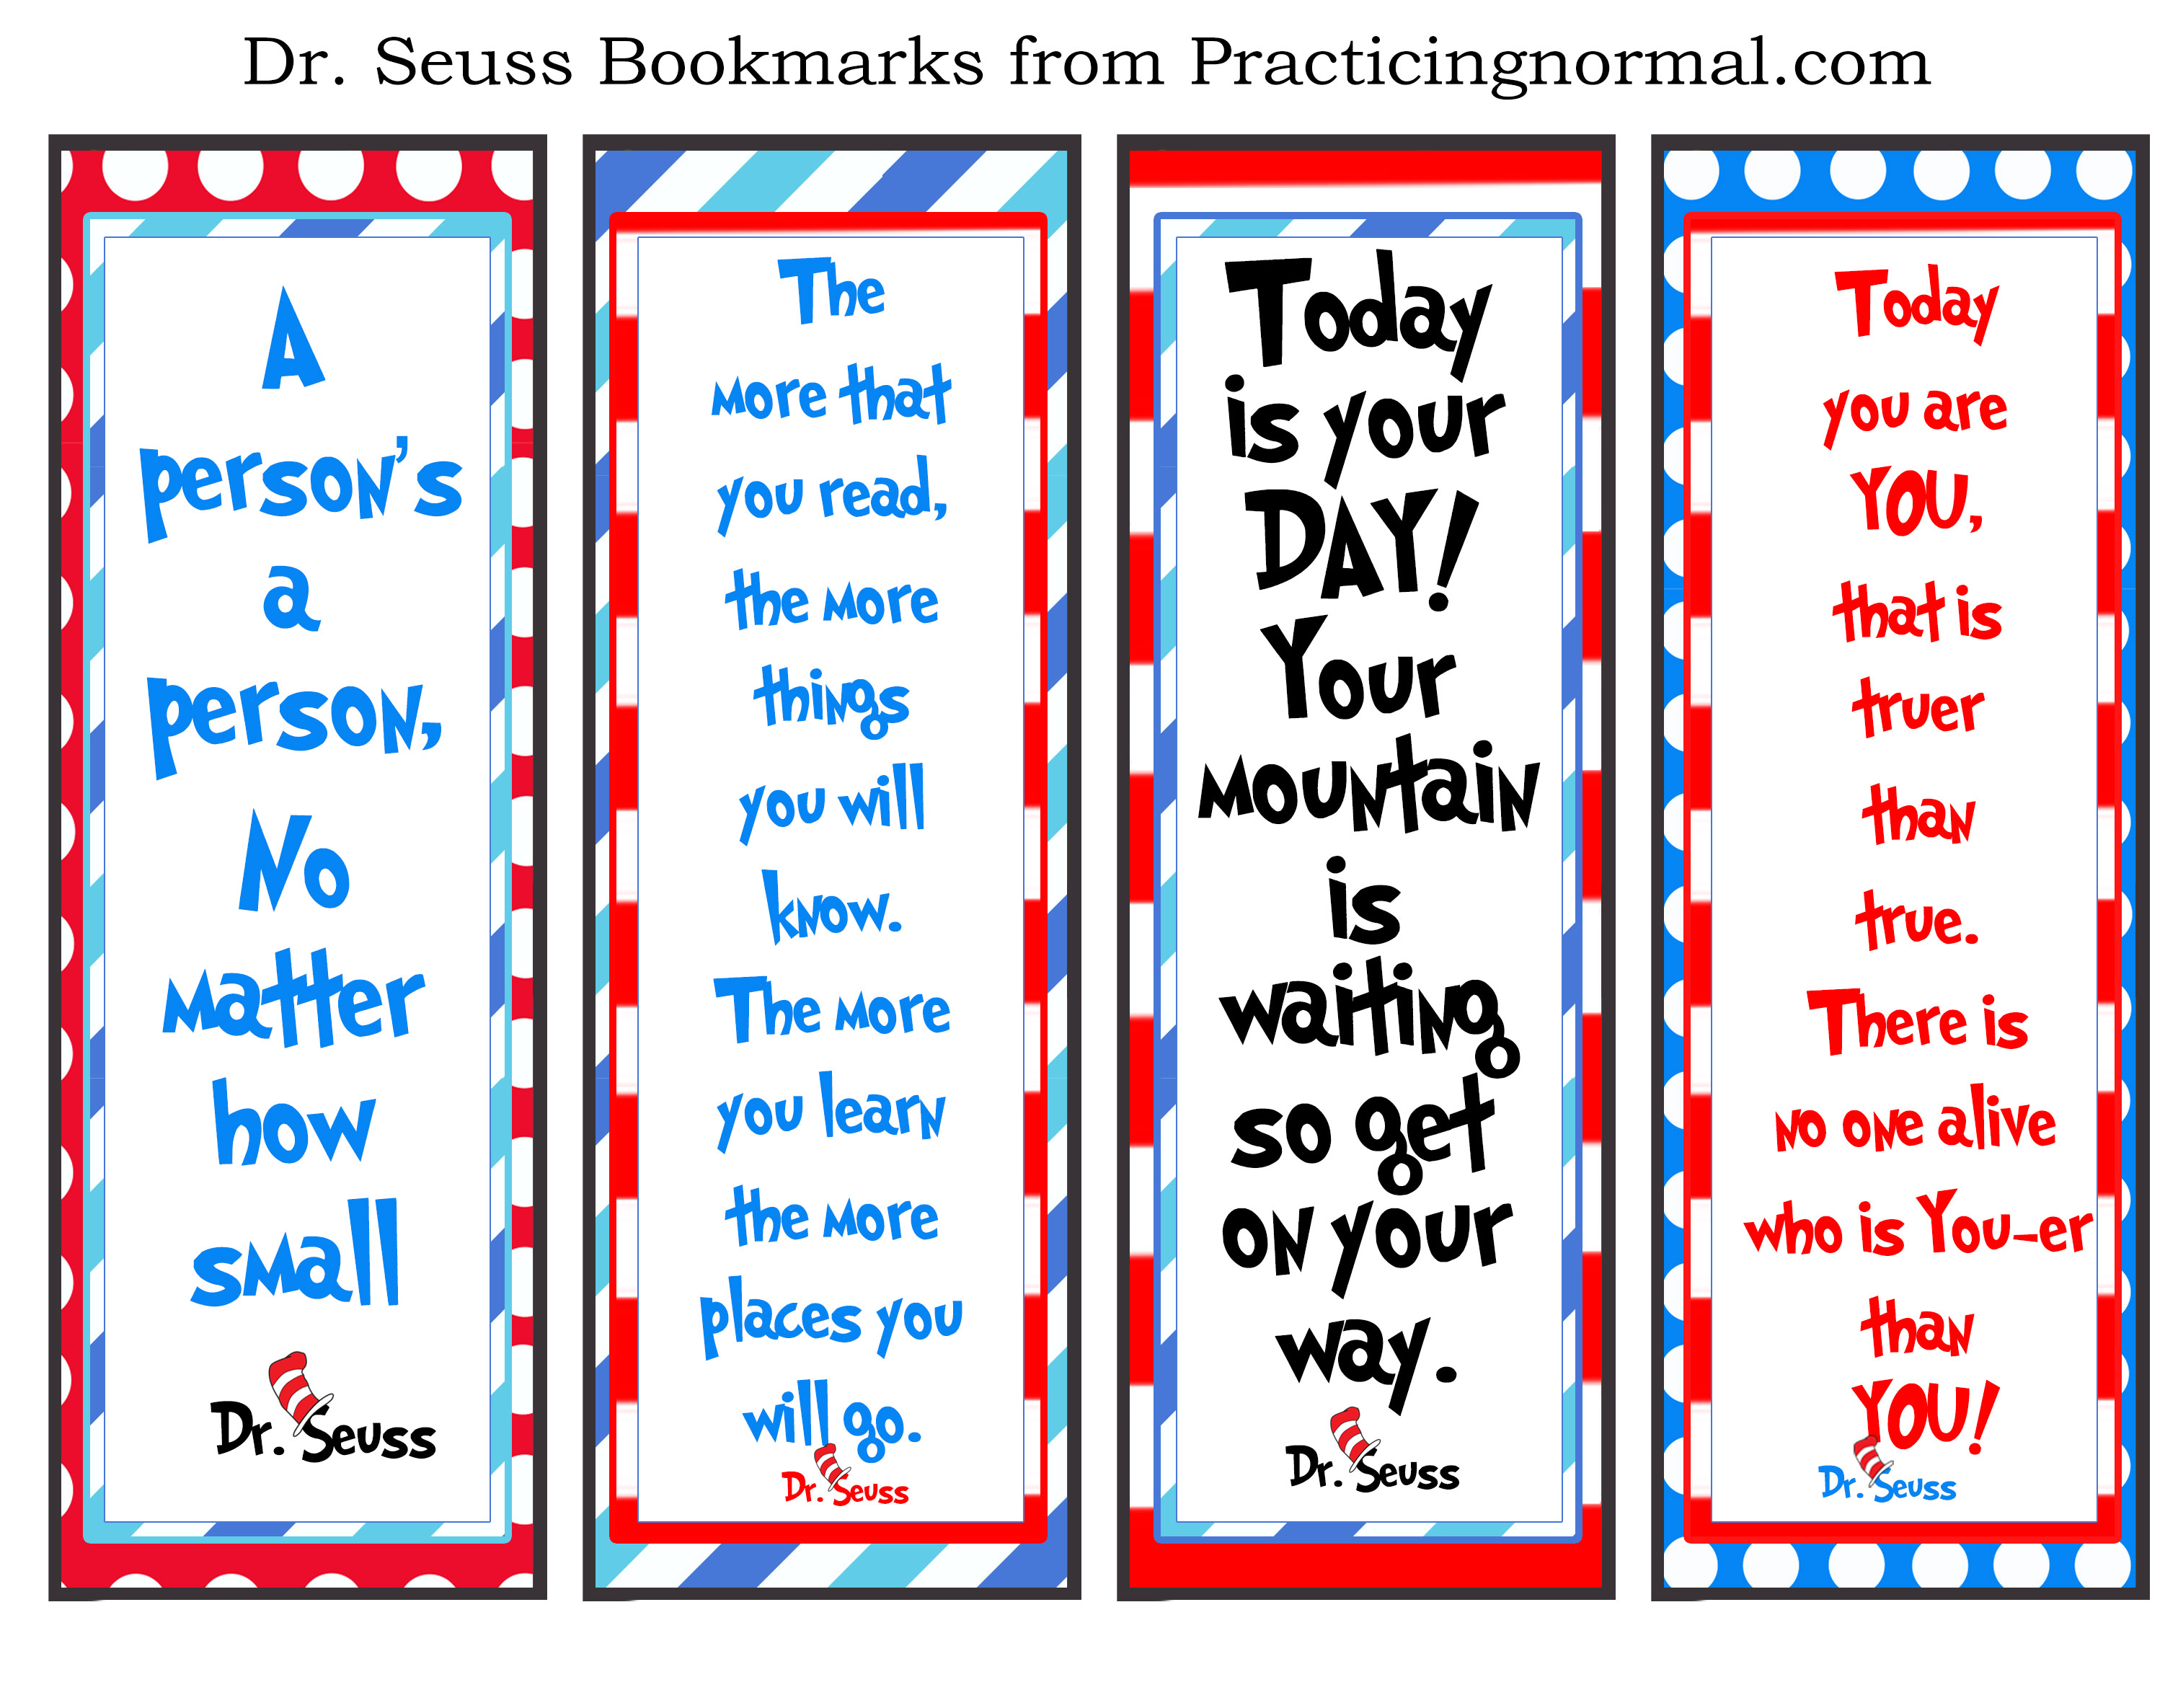 Unforgettable Dr. Seuss Quotes from Practicingnormal  #drseuss #books #quotes #reading #bookmarks